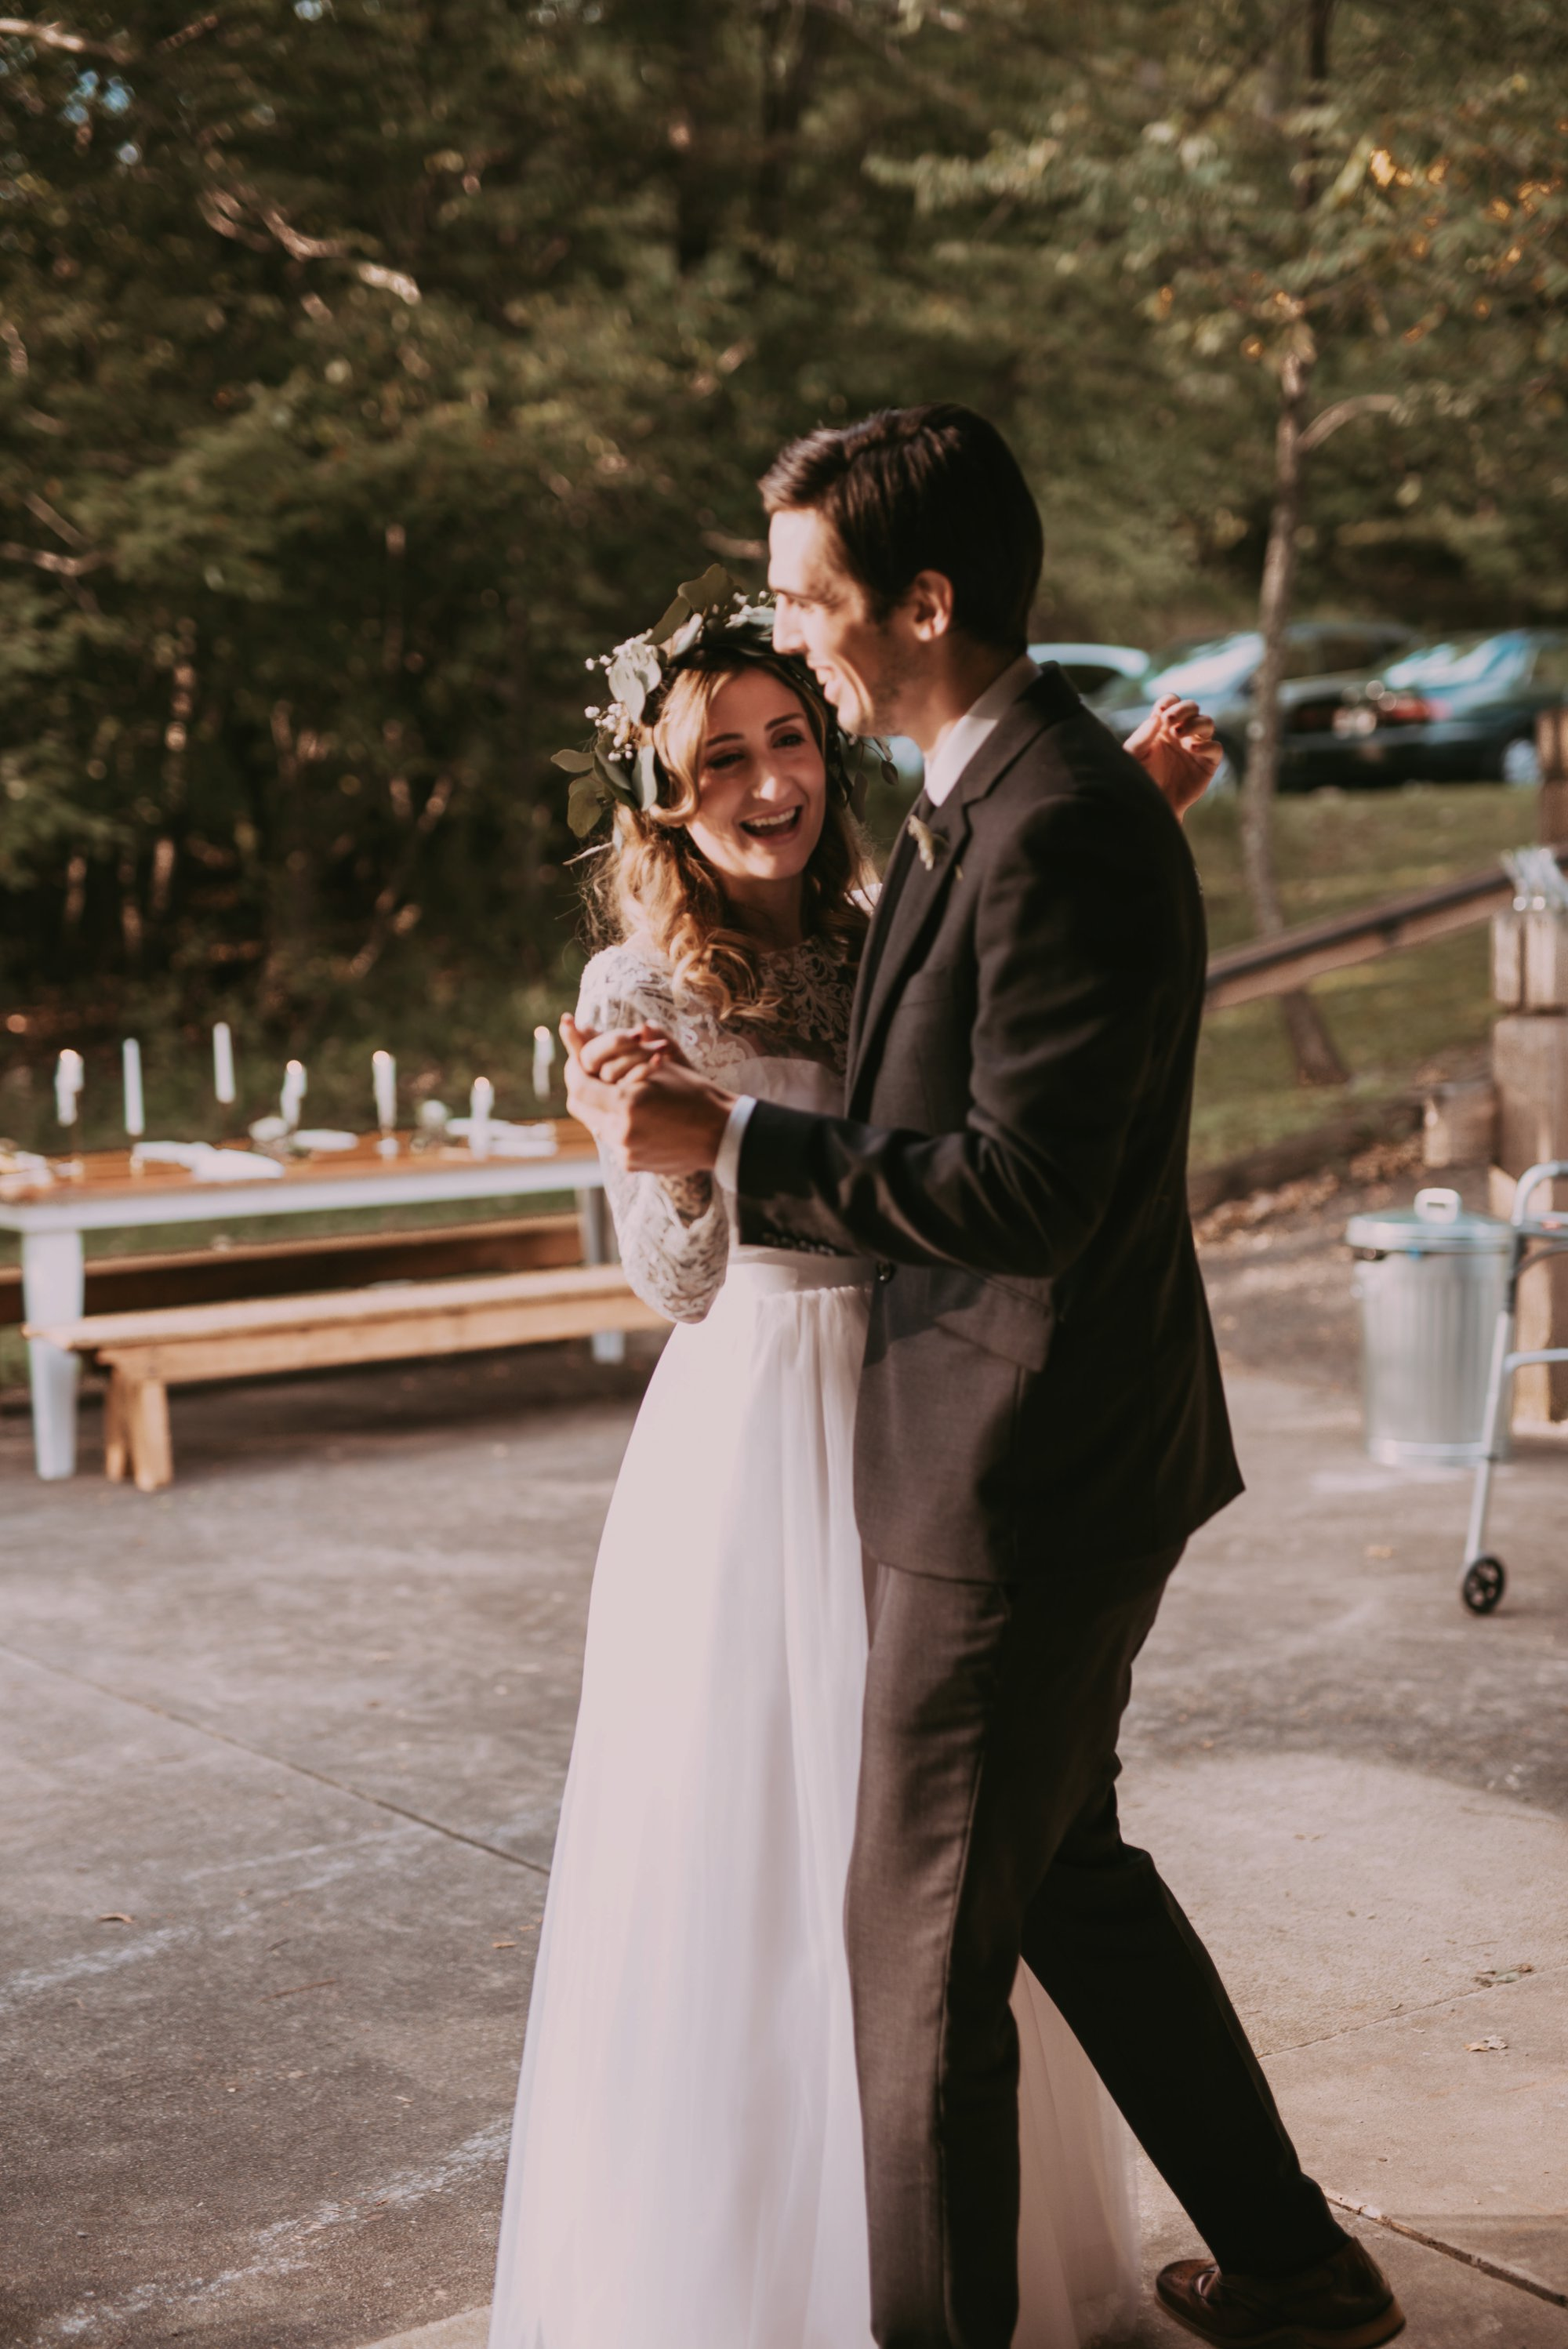 Rustic Intimate Vegan Forest Wedding with Handmade Dress. First Dance